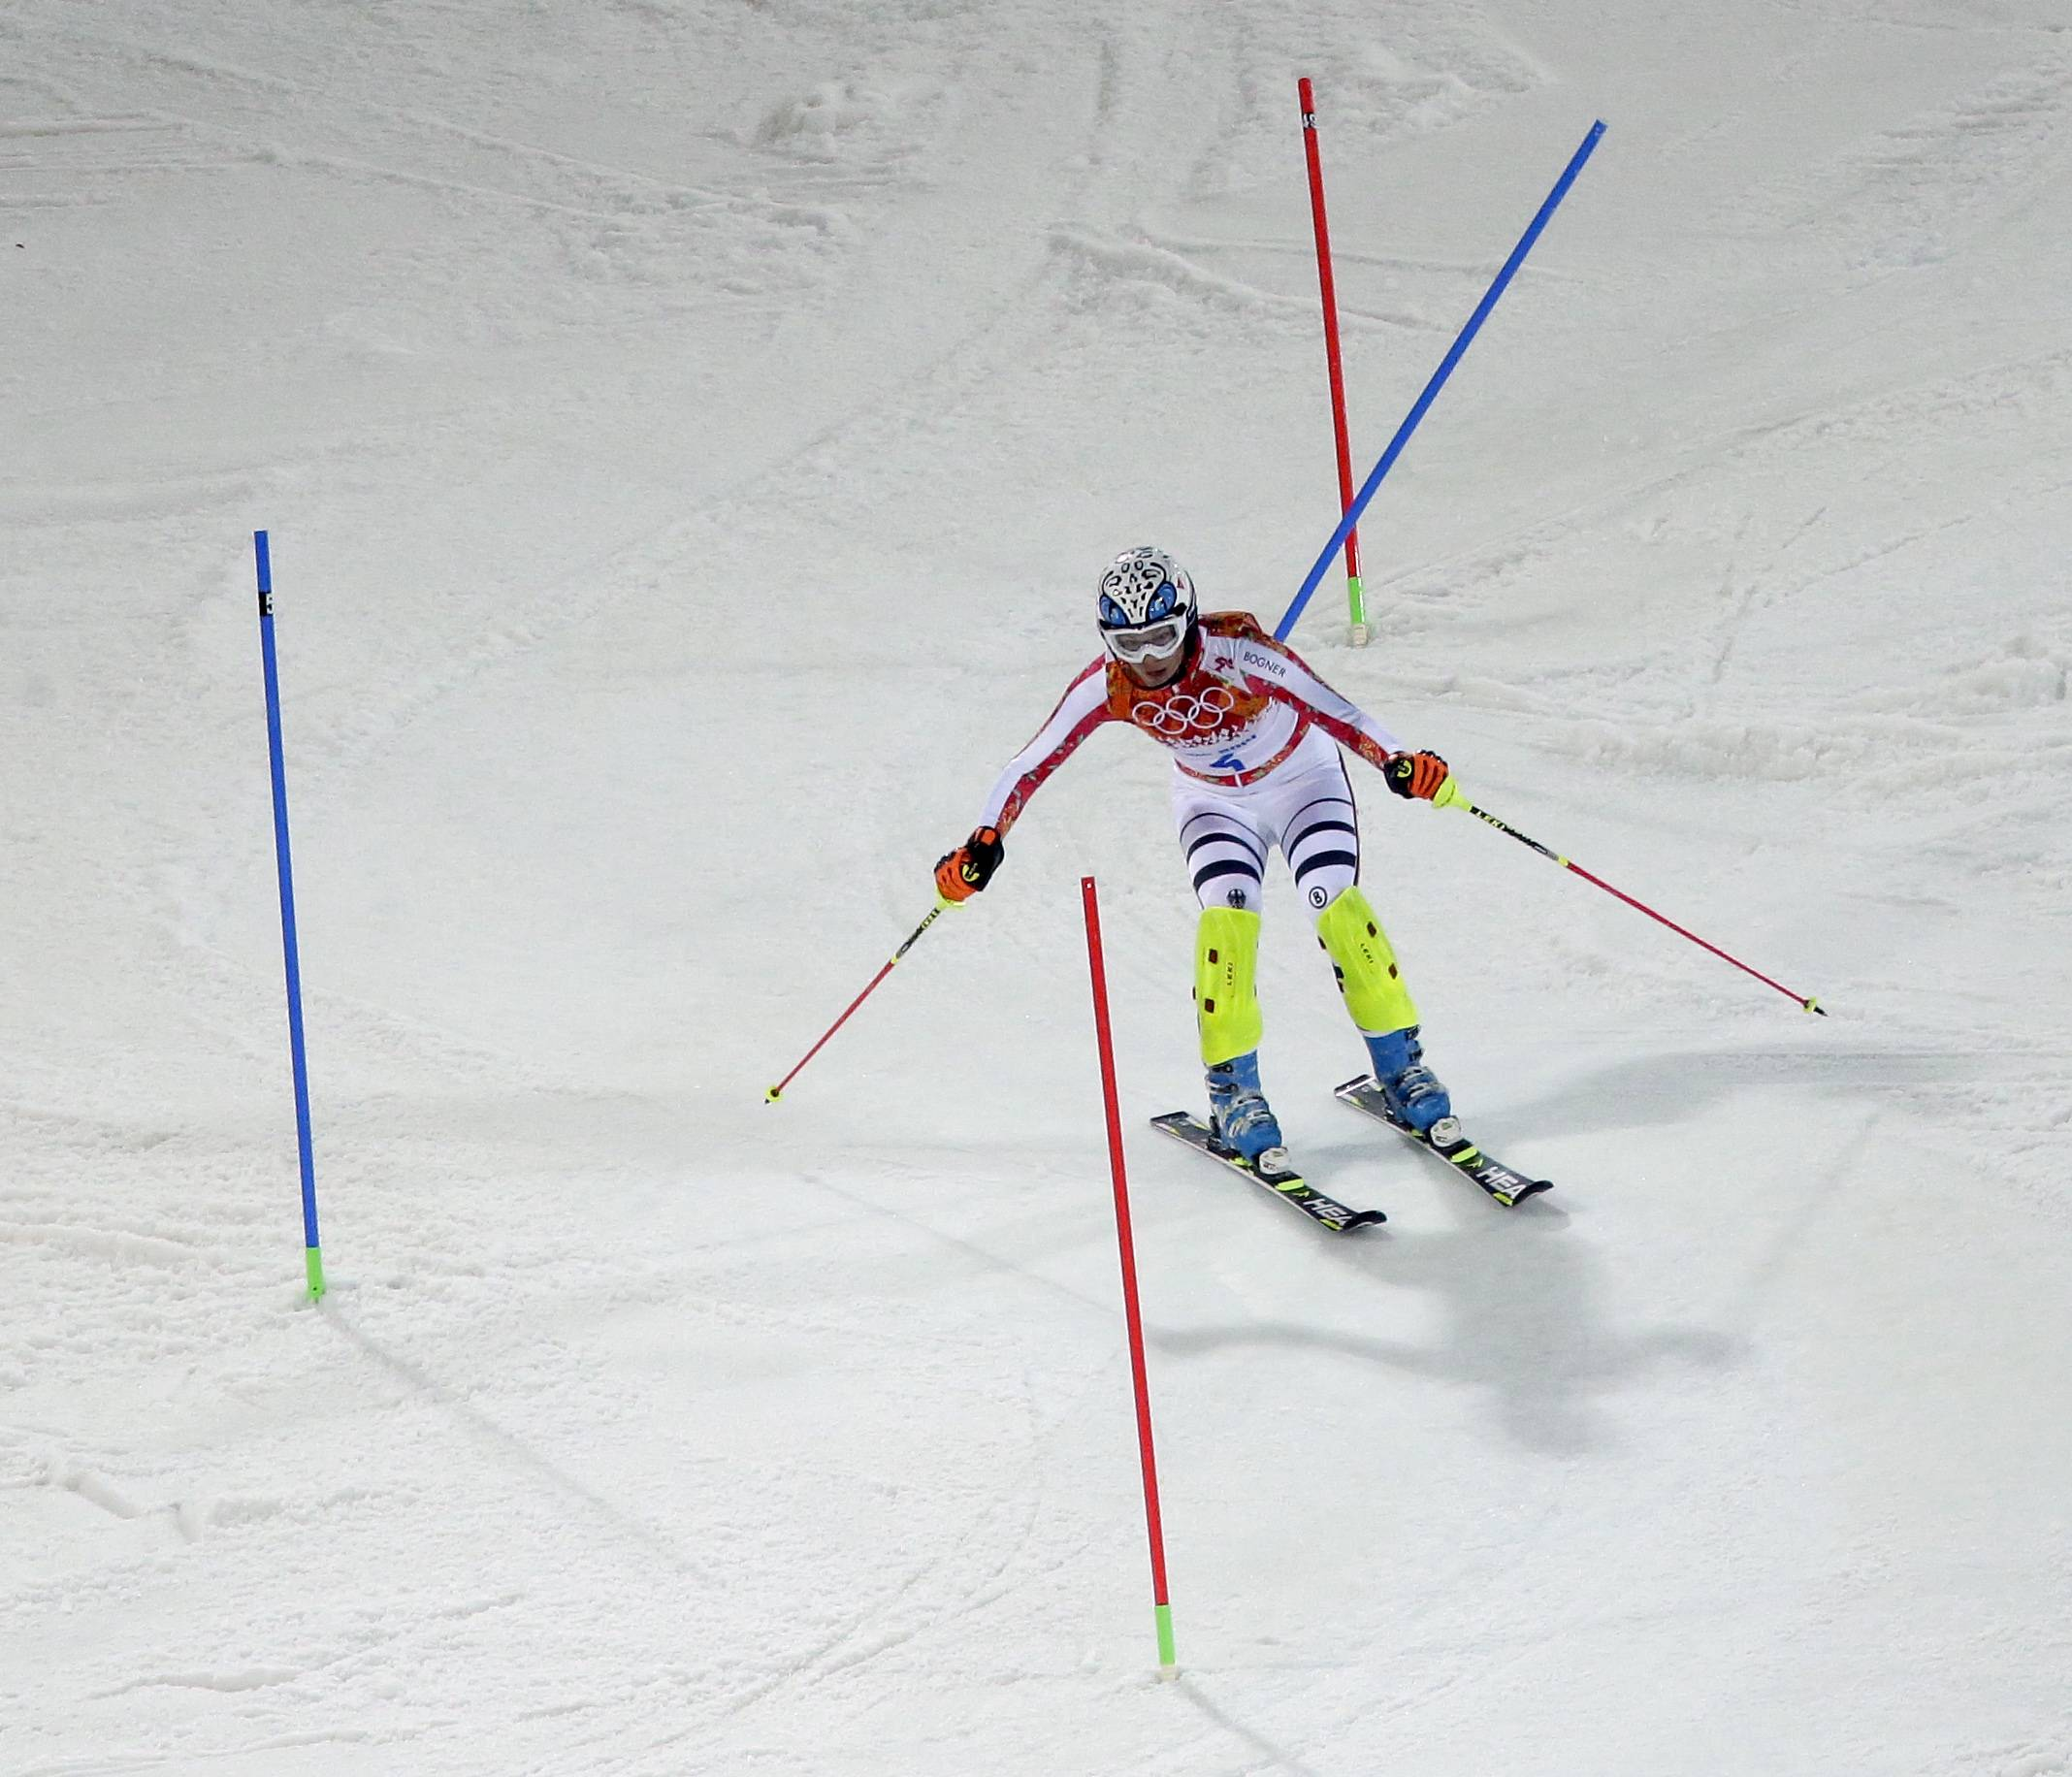 Germany's Maria Hoefl-Riesch skis in her second run in the women's slalom.